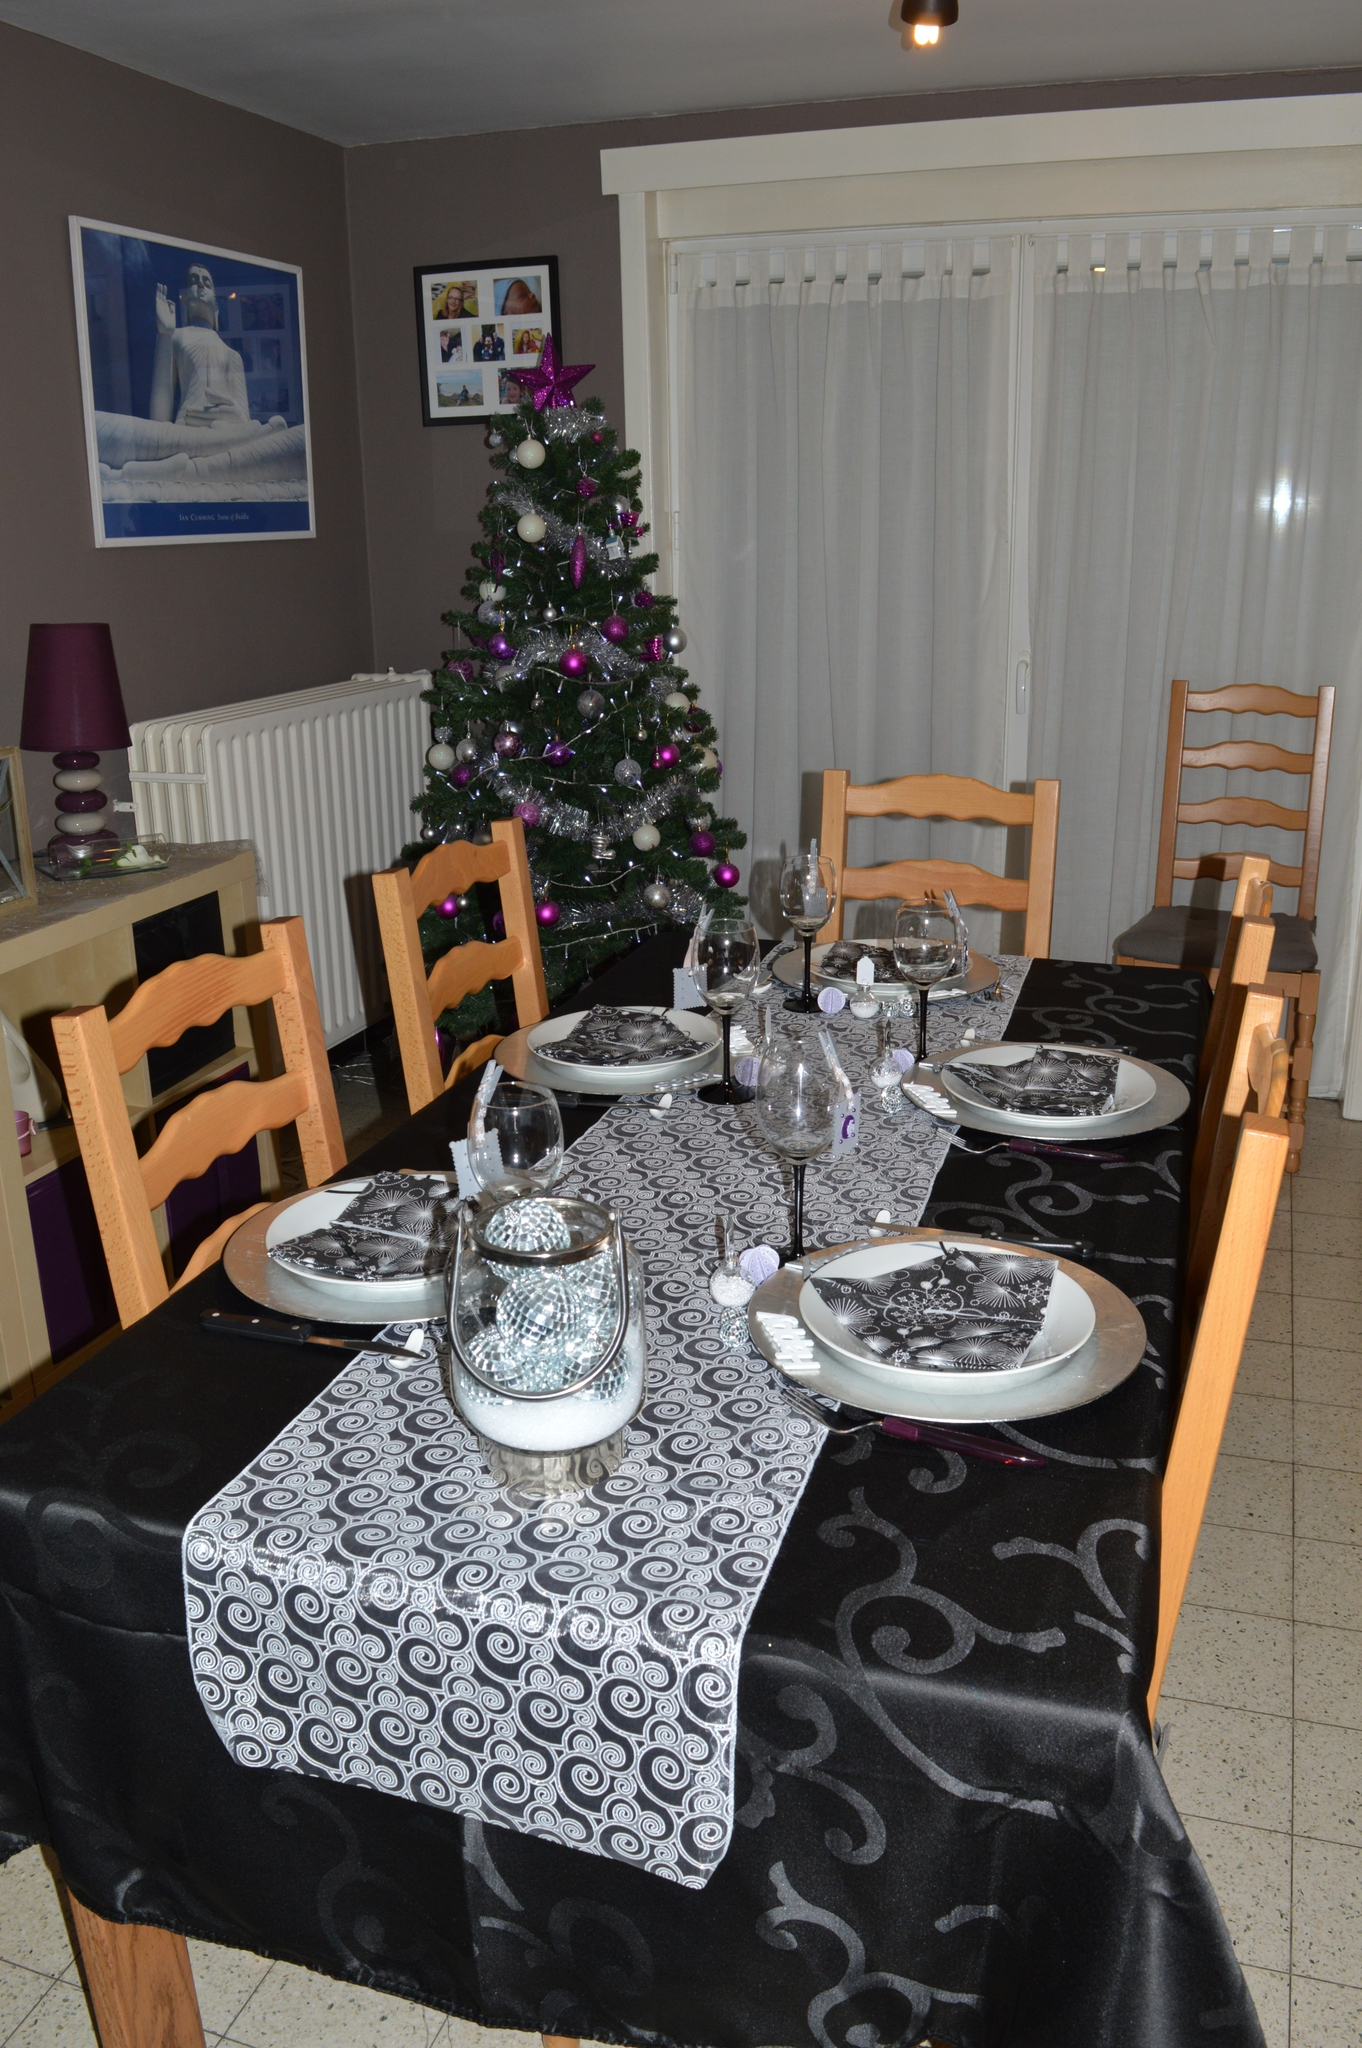 Decoration table nouvel an - Deco table reveillon nouvel an ...